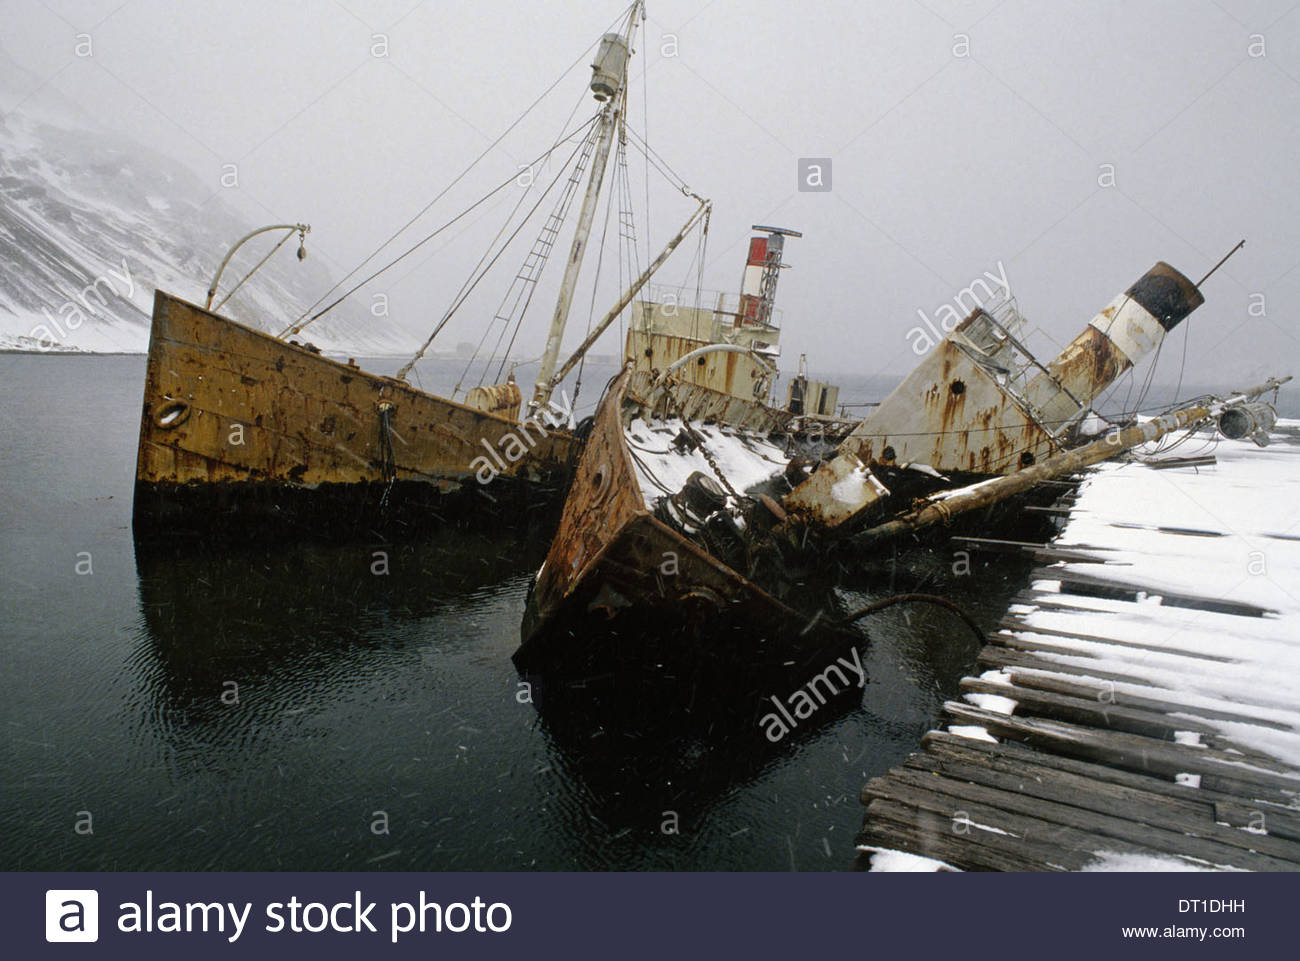 Grytviken South Georgia Island Antarctica Whale catcher boats sunk at moorings at Grytviken - Stock Image